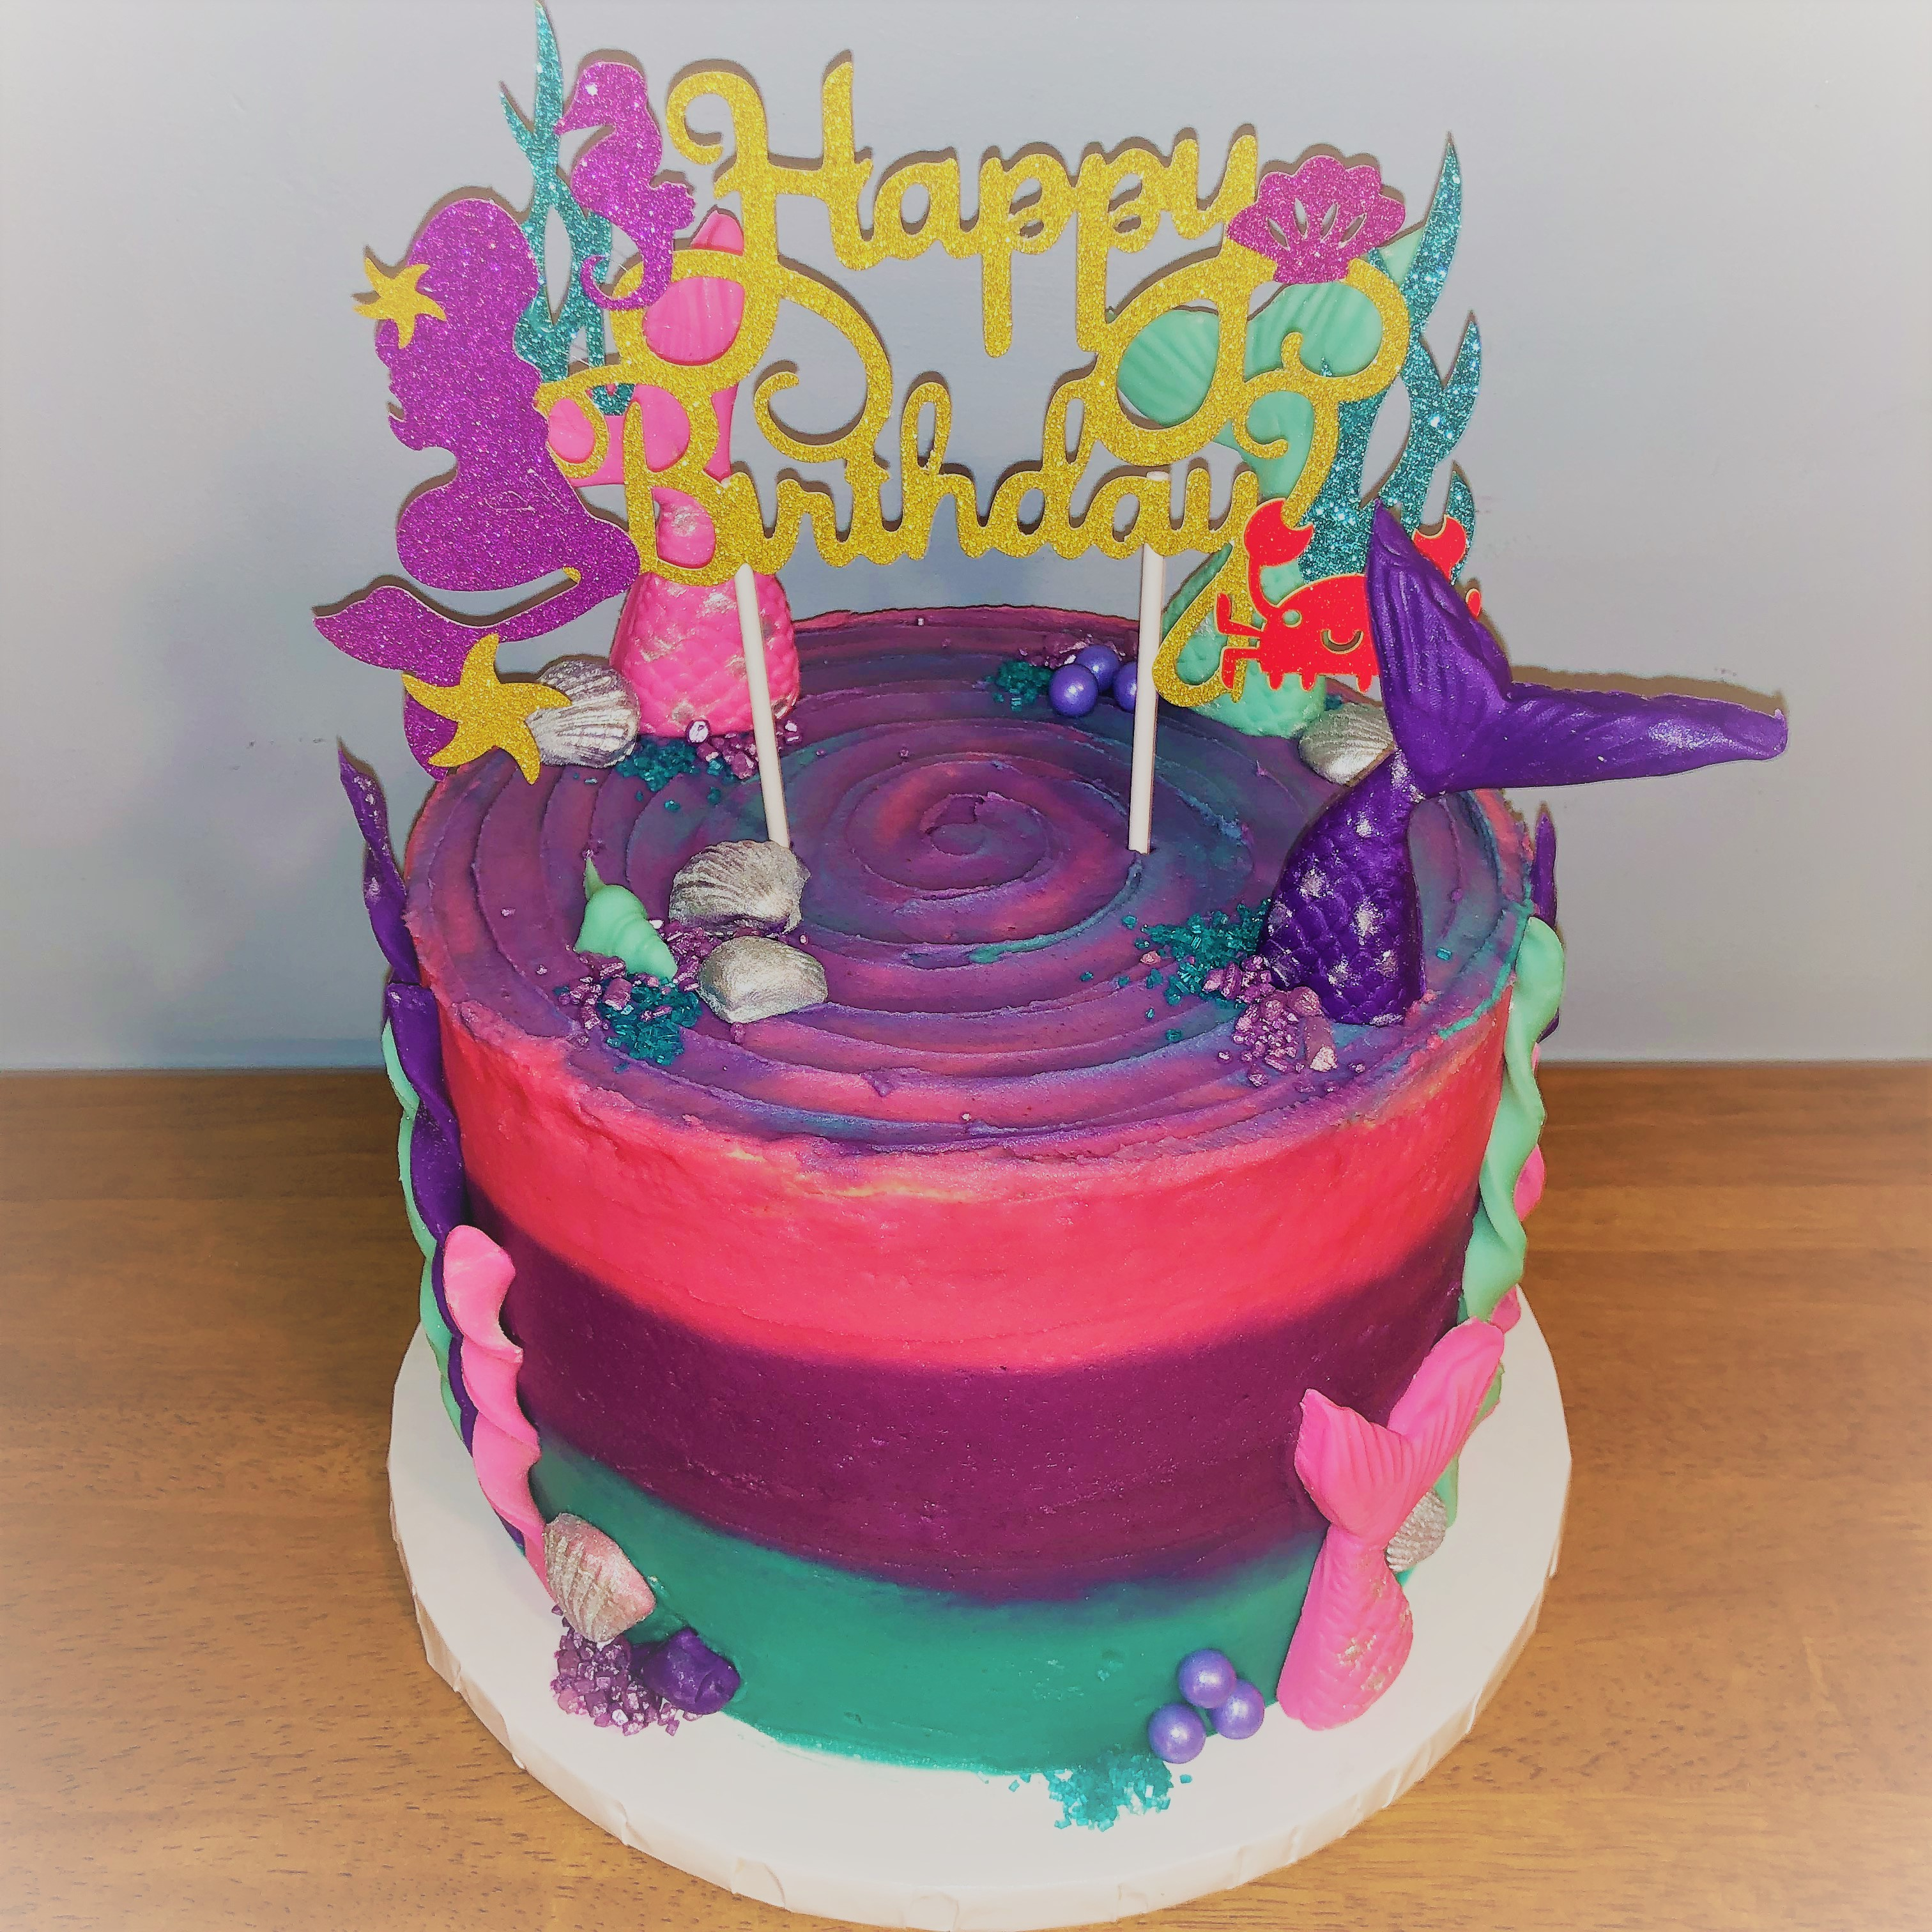 Mermaid Bright Cake1